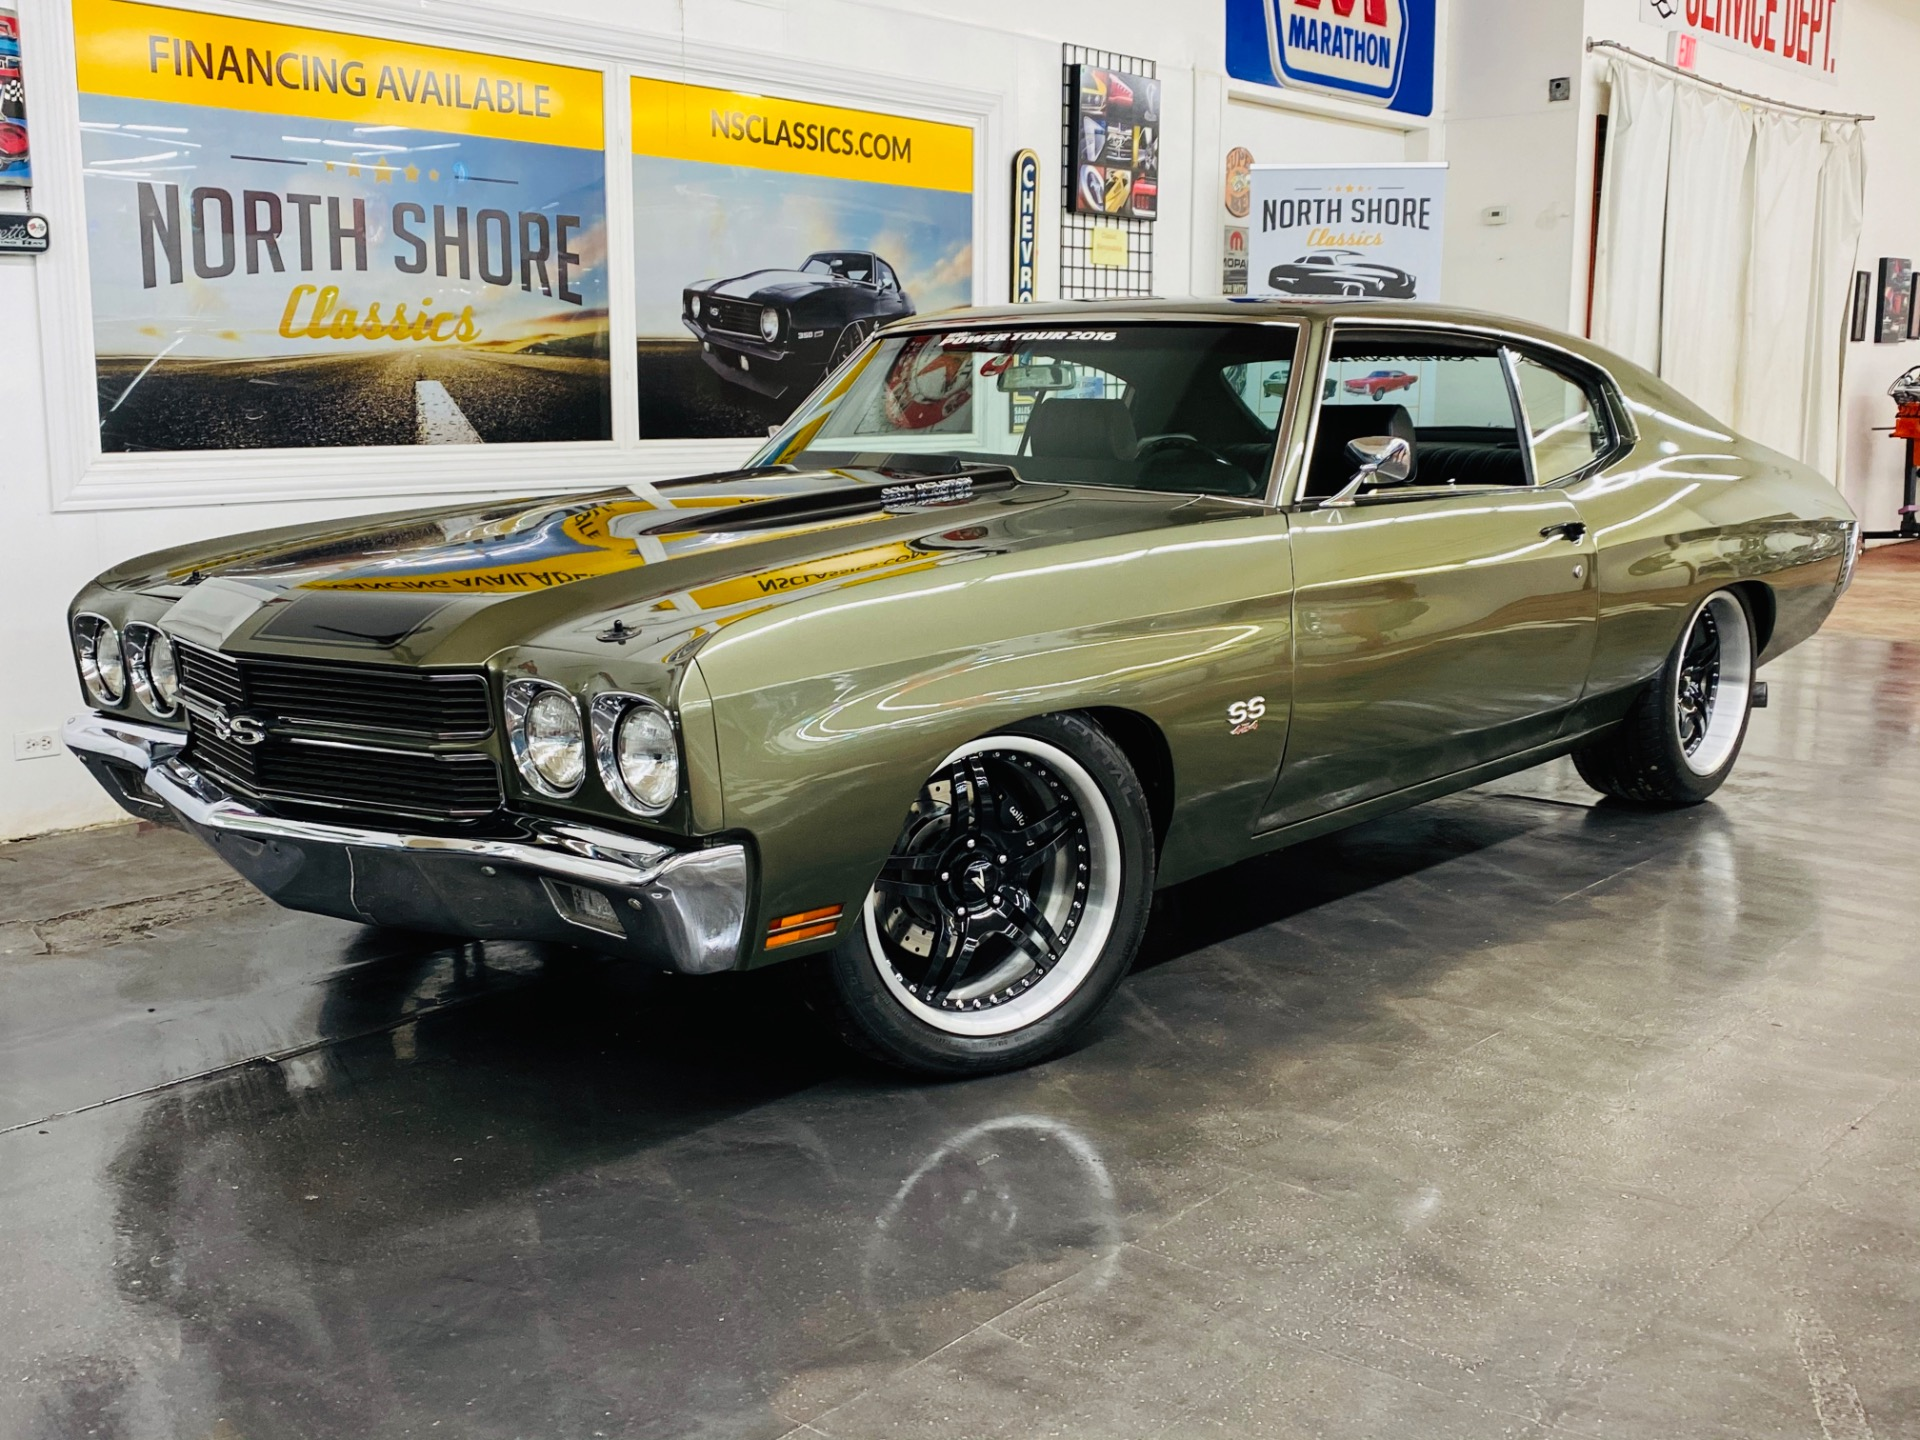 Used 1970 Chevrolet Chevelle - 540 BIG BLOCK - 6 SPEED TRANS - PRO TOURING BUILD - SEE VIDEO | Mundelein, IL